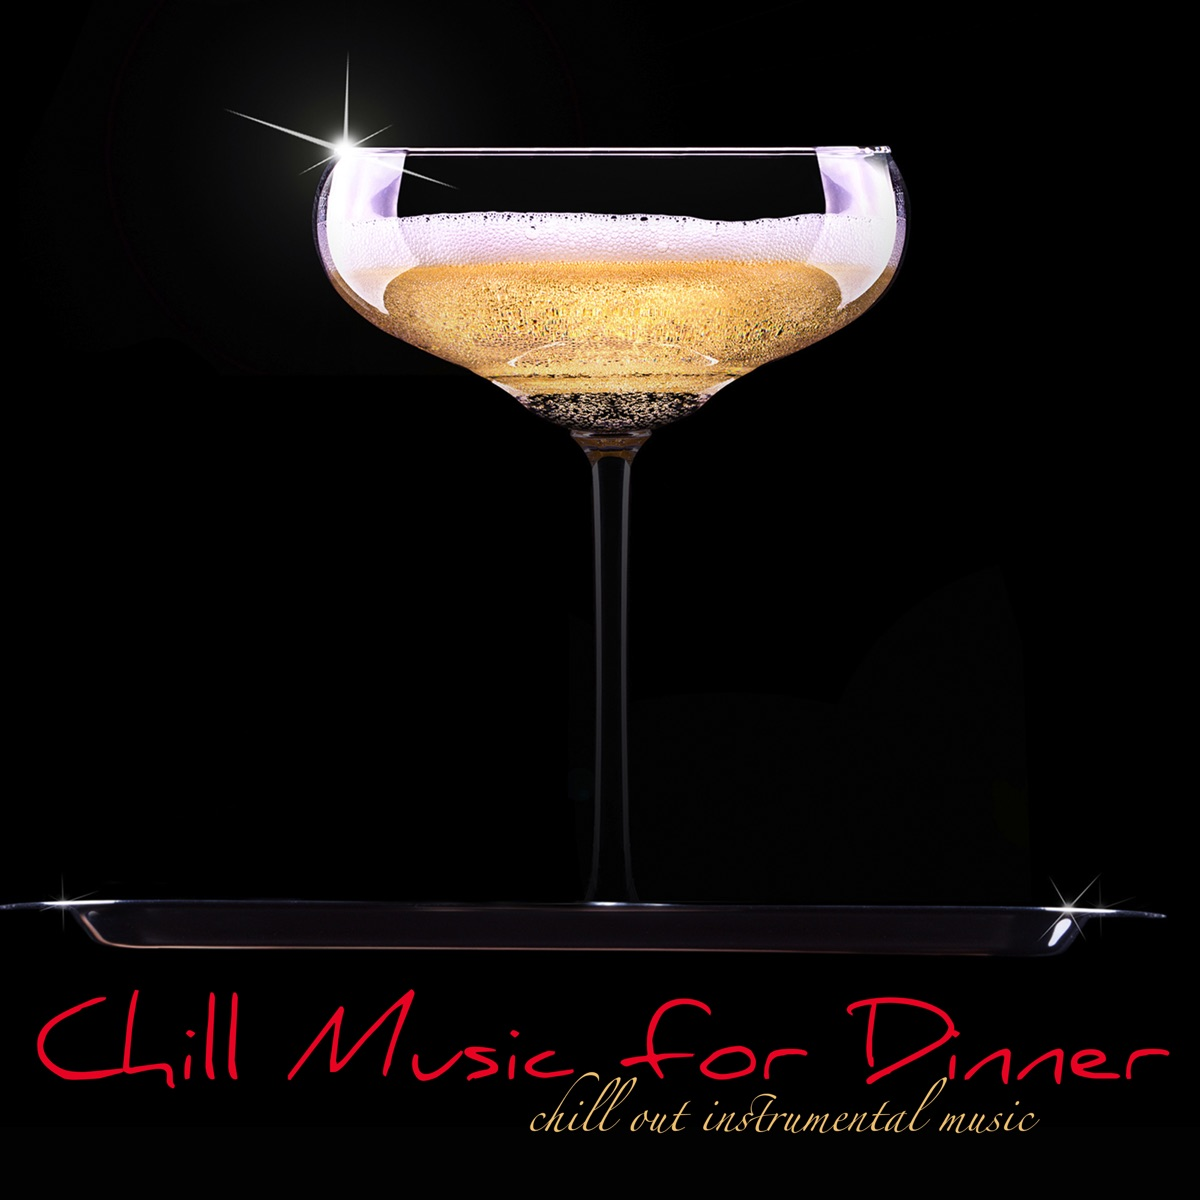 Chill Music for Dinner – Chill Out Instrumental Music, Cool